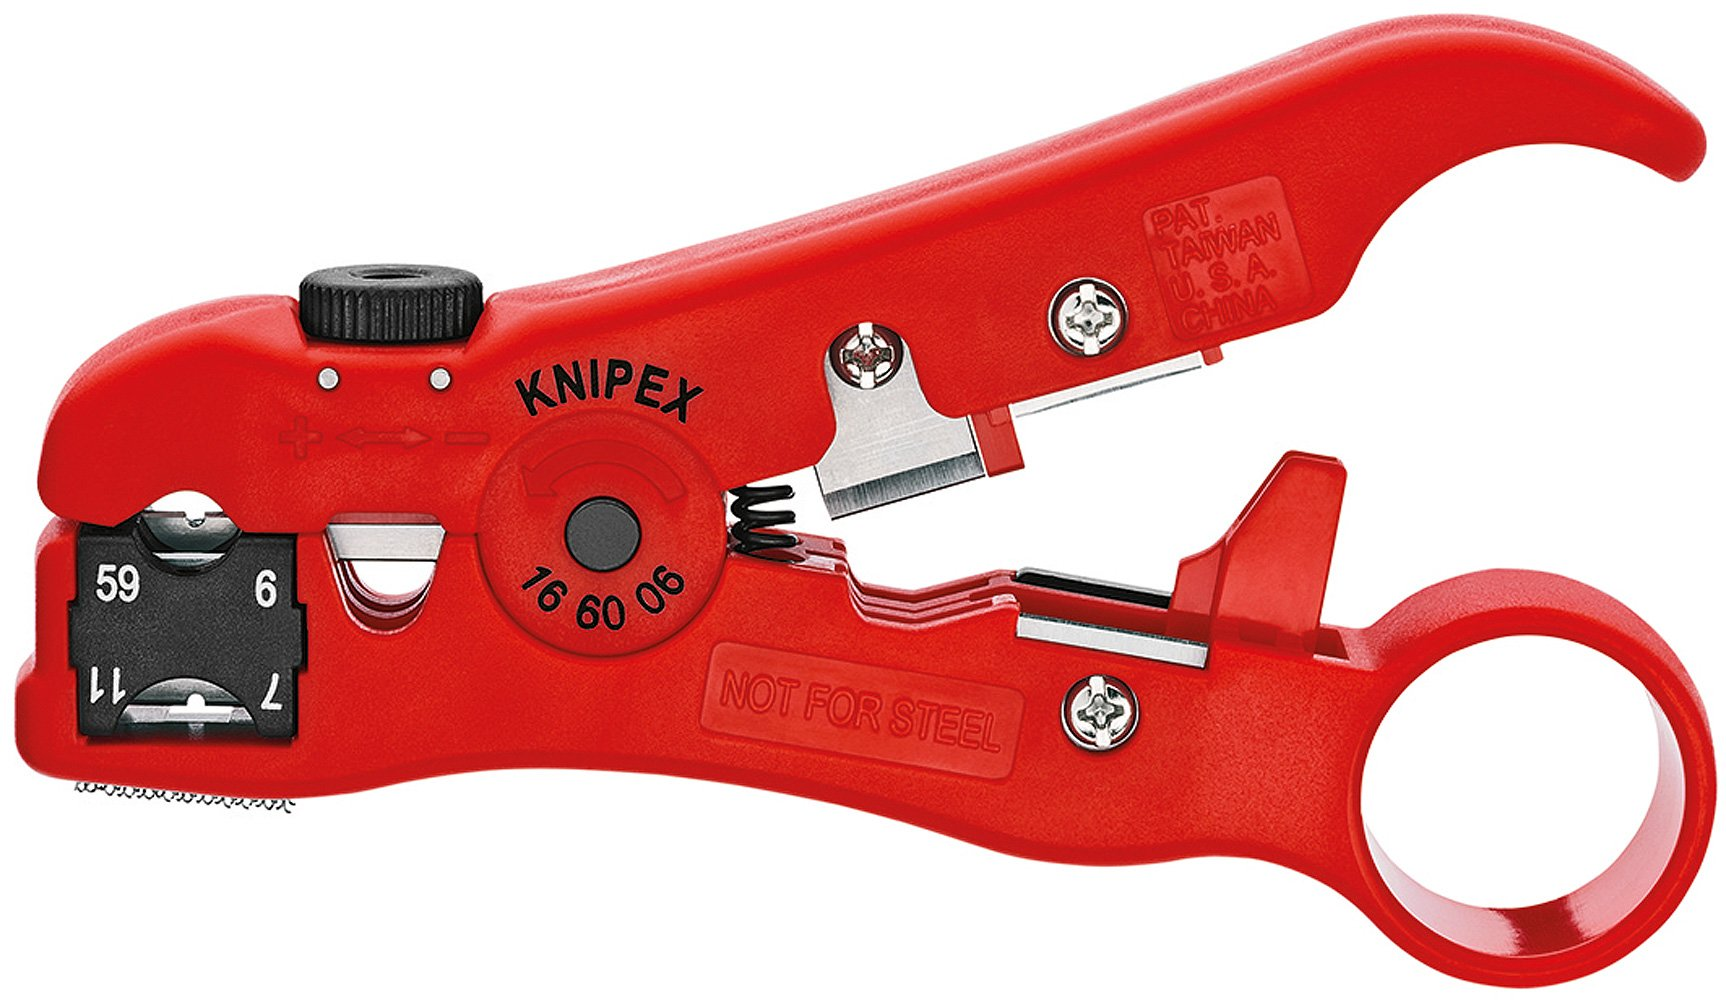 Knipex 16 60 06 SB Stripping Tool for coax cables and data cable 4,92'' in blister packaging